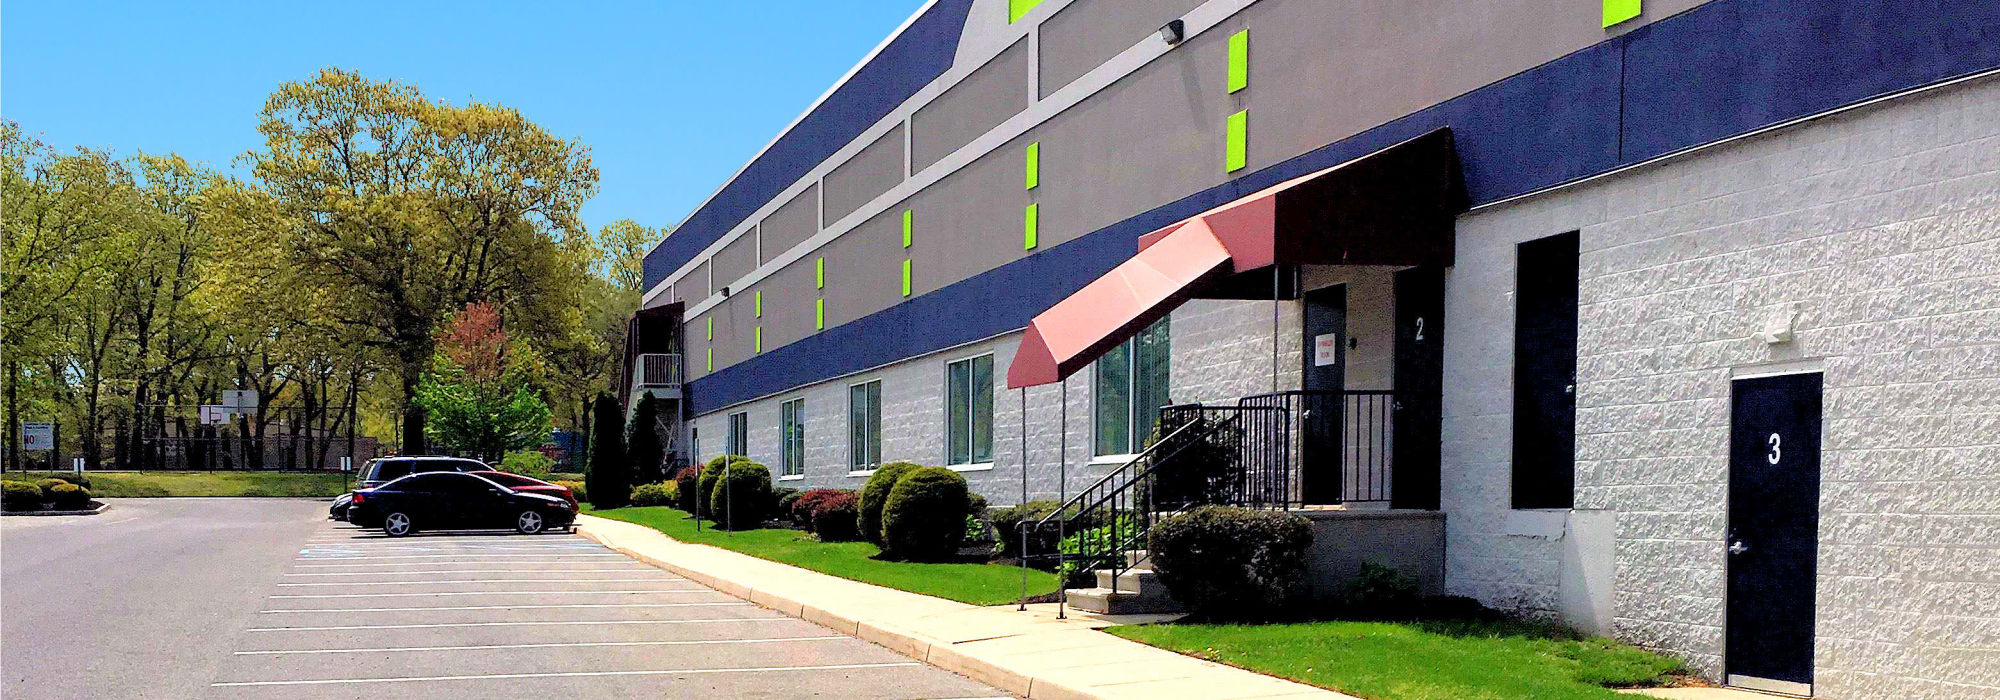 Prime Storage in Cinnaminson, NJ